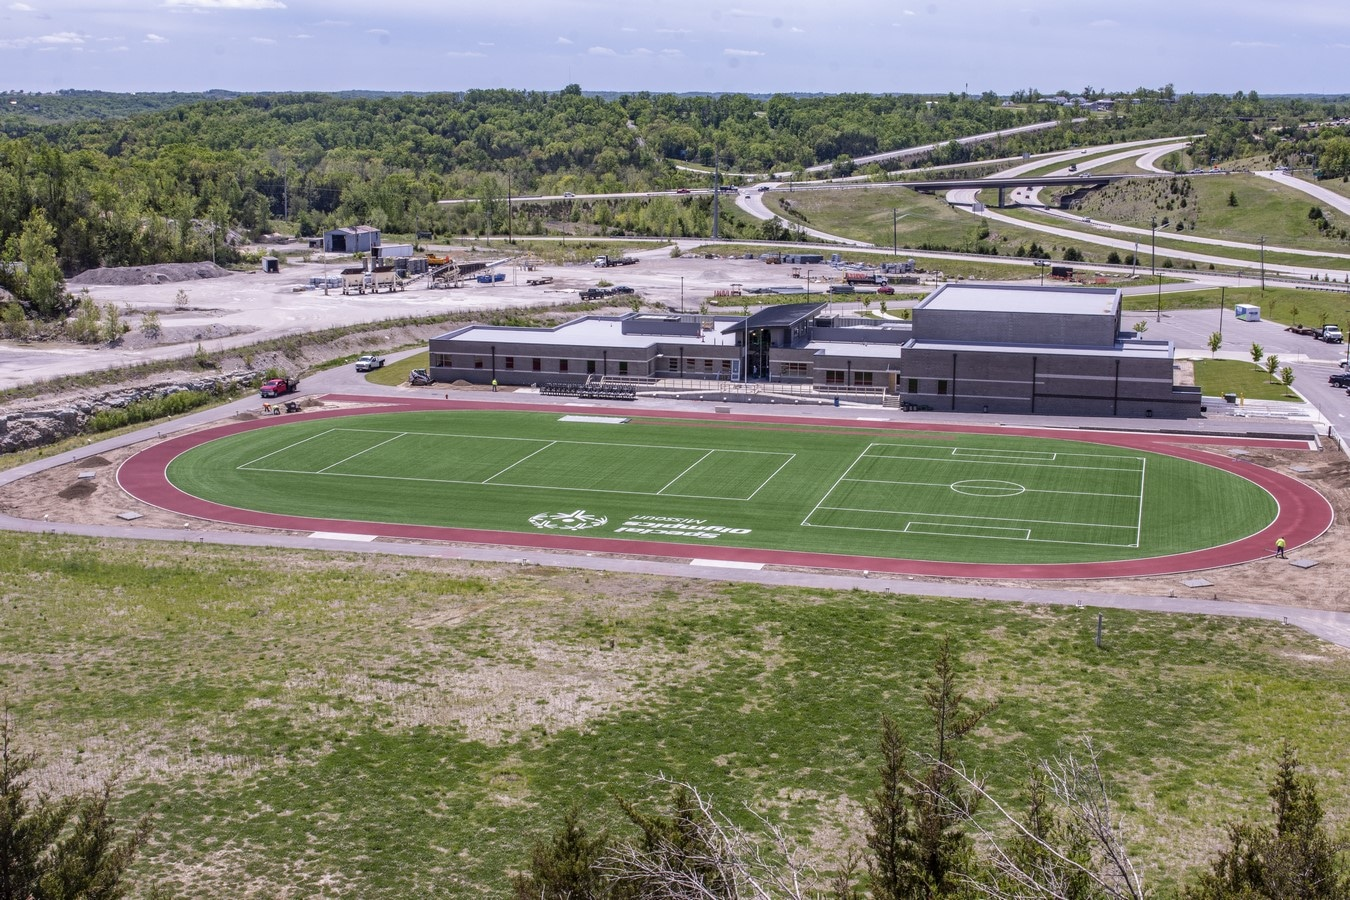 An aerial photo of the back part of the Training for Life Campus showing the track, turf field, and open space